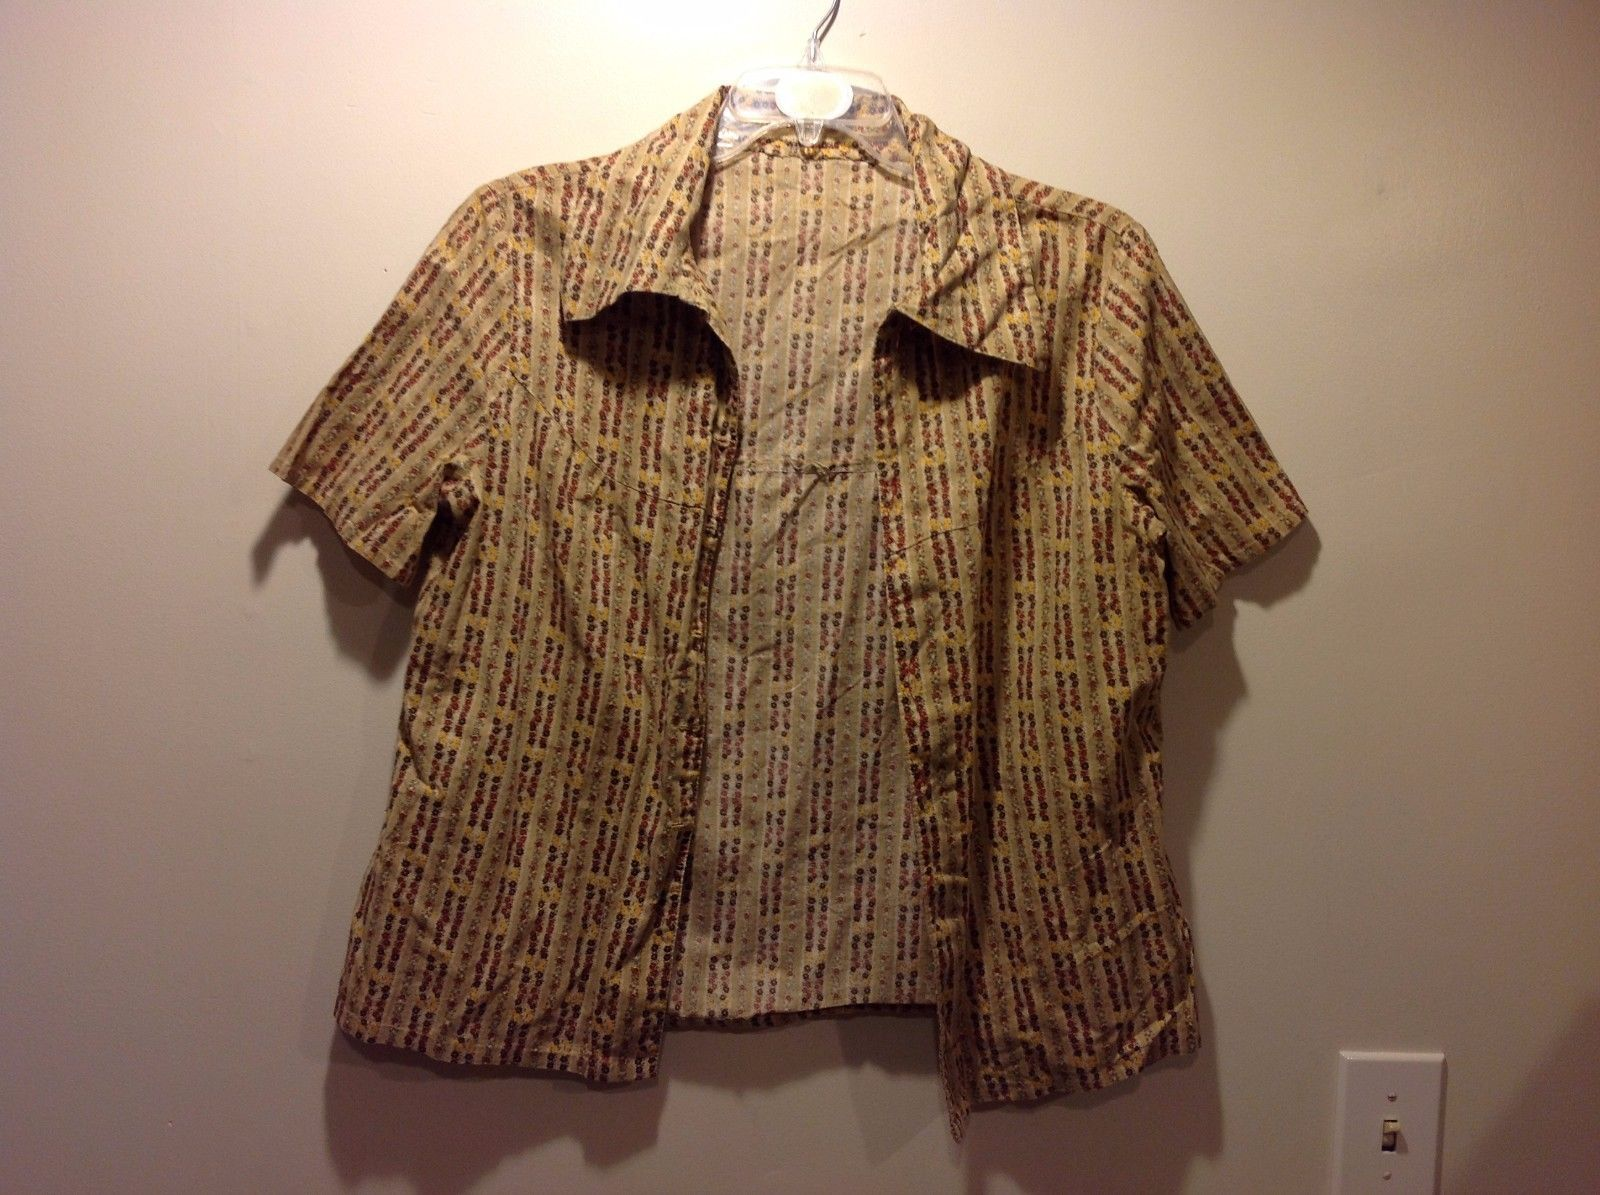 Ladies Button Up Sand Colored Short Sleeve Collared Top